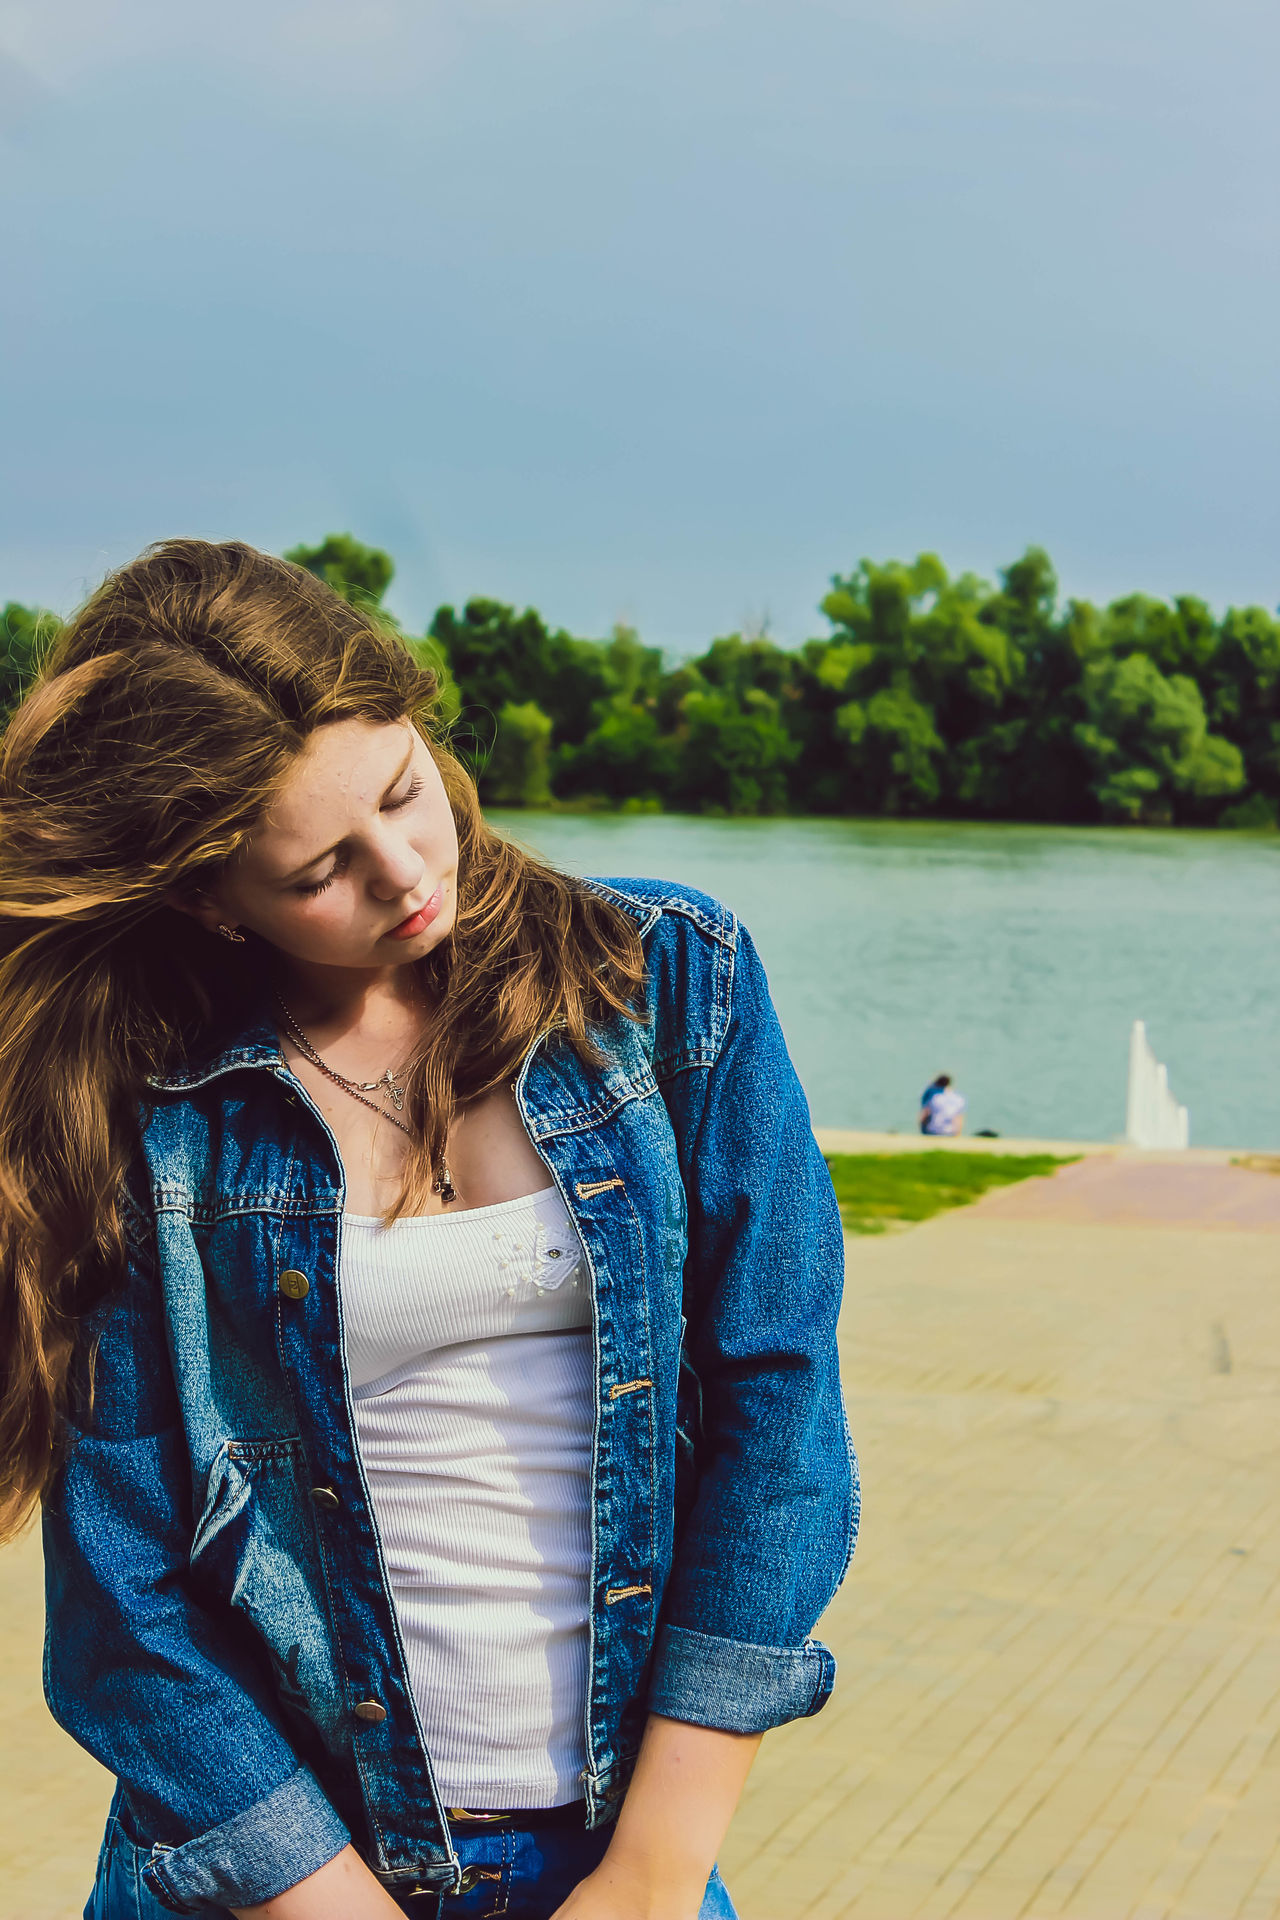 Beautiful stock photos of tiere, young adult, young women, beautiful people, beauty